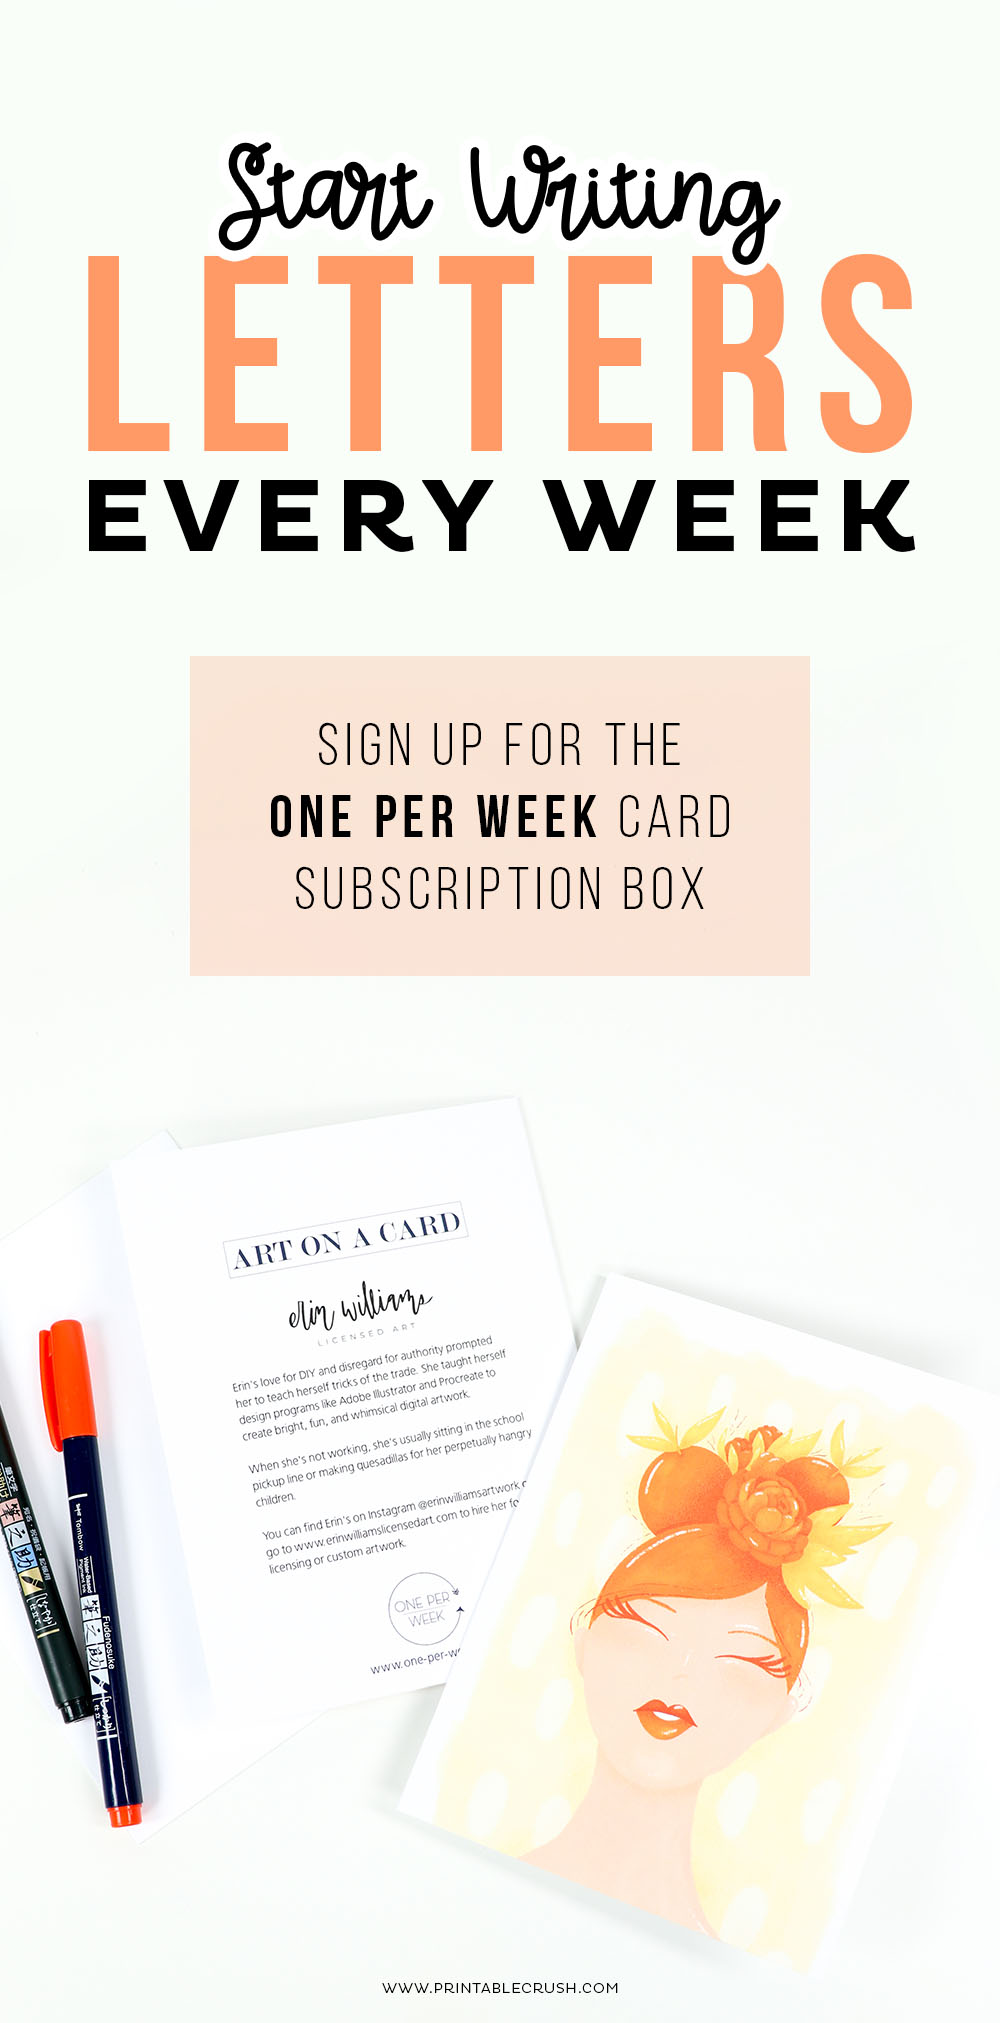 Start Writing Letters every week with a One Per Week Card Subscription Box